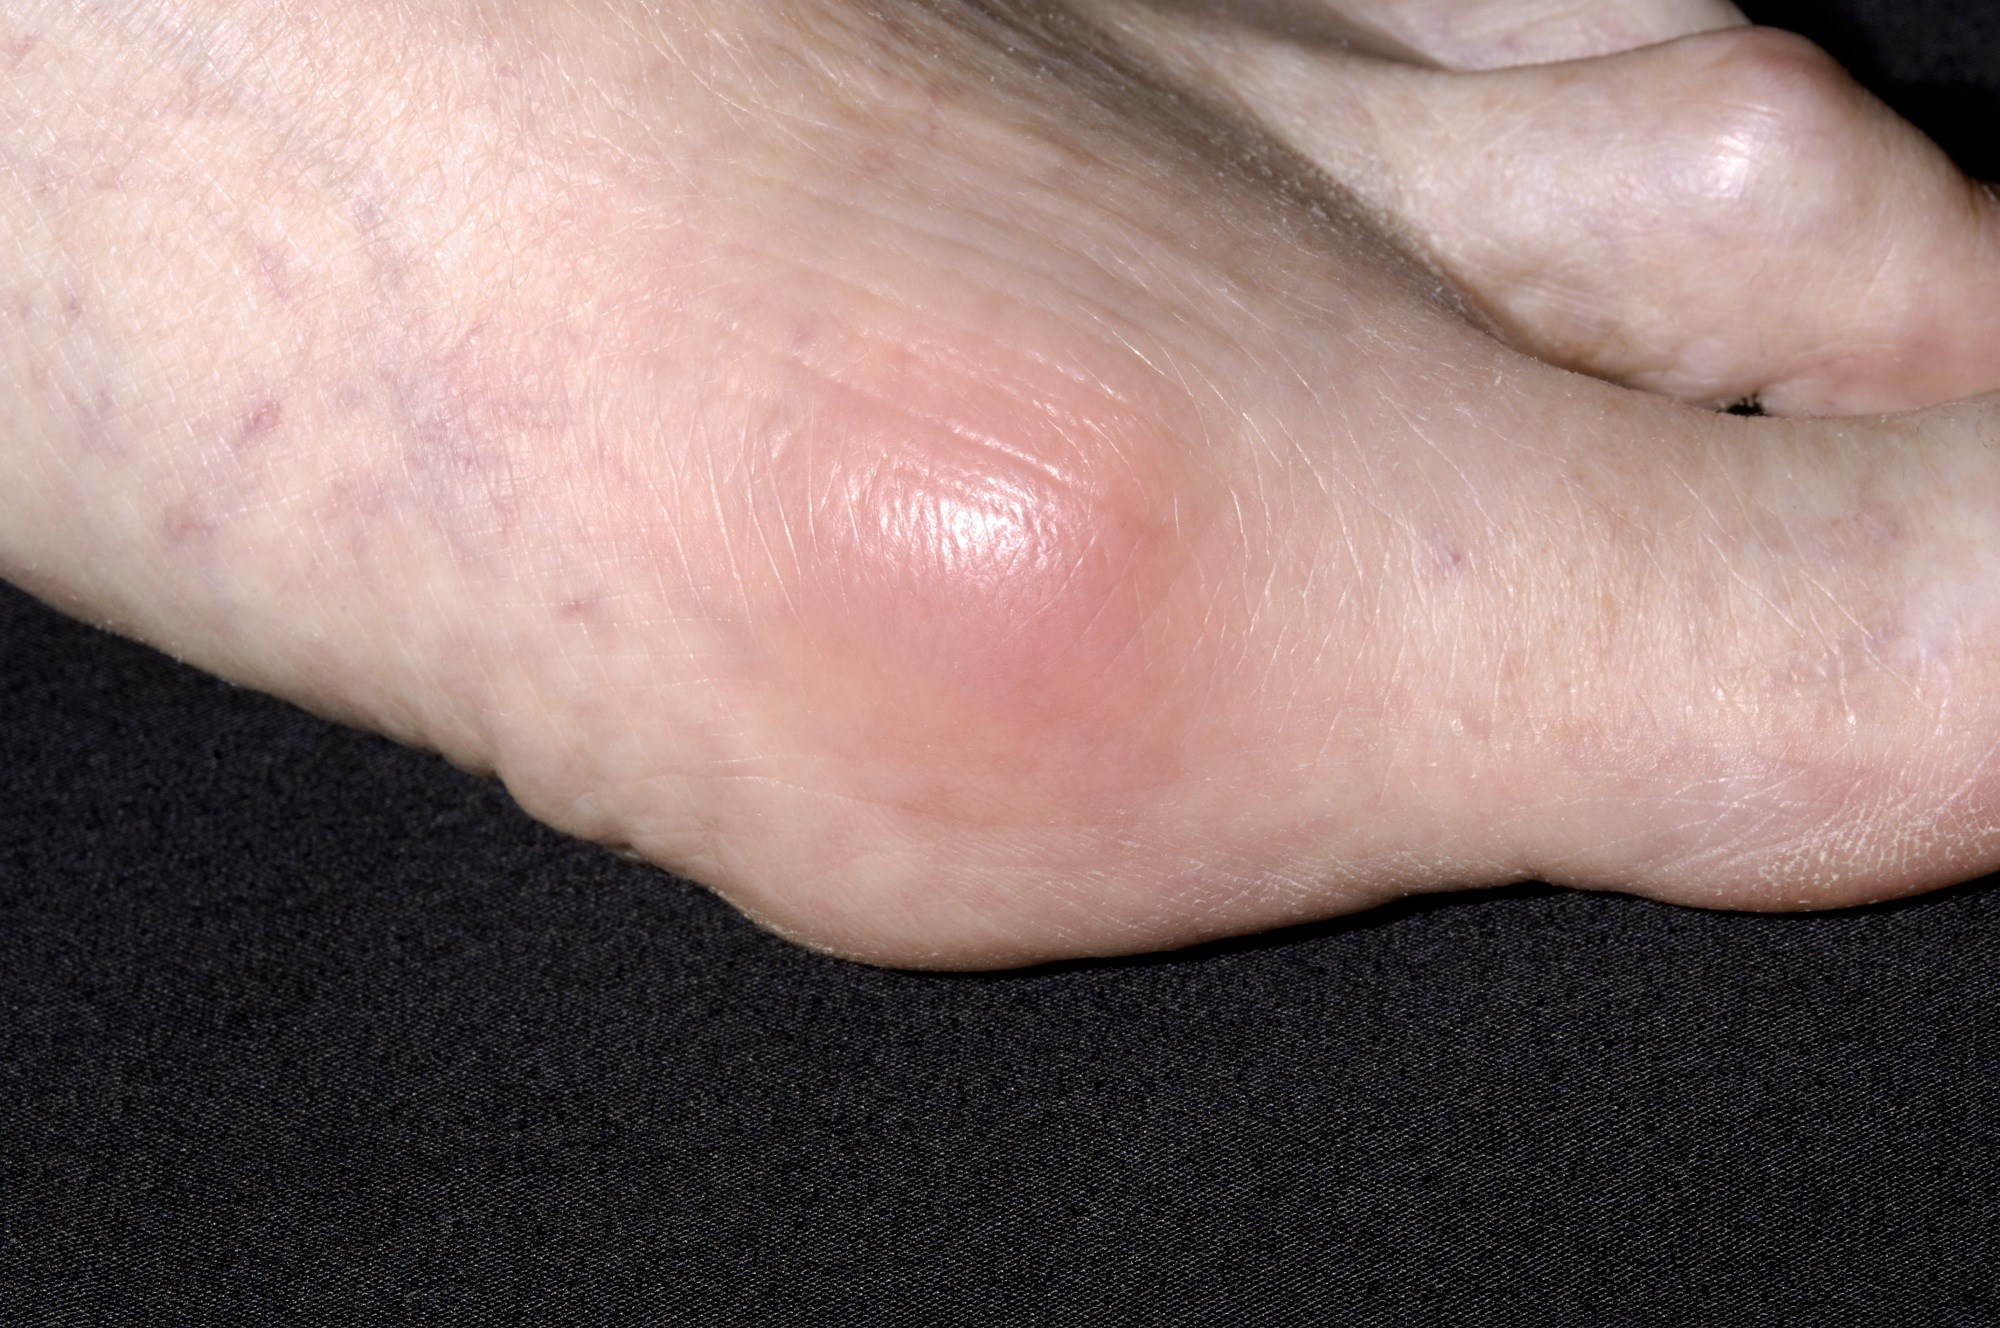 Routine Knee, Metatarsophalangeal Joint Examination May Improve Gout Diagnosis